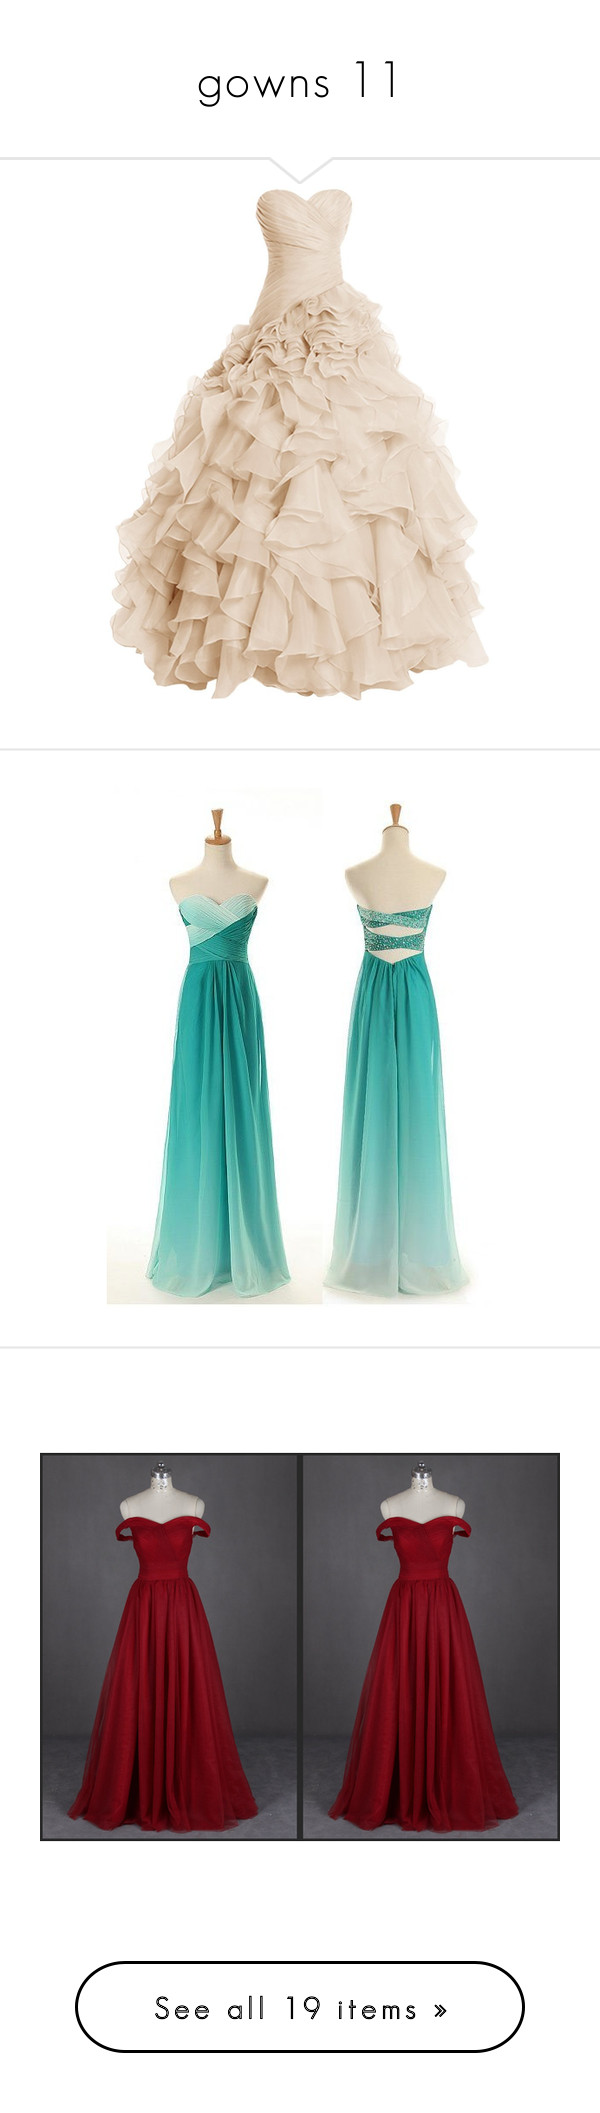 """gowns 11"" by helena-handbasket ❤ liked on Polyvore featuring dresses, gowns, long dress, vestidos, sweetheart neckline dress, sweetheart neckline prom dress, sweetheart neckline long dress, long length dresses, pink dress and blue ball gown"